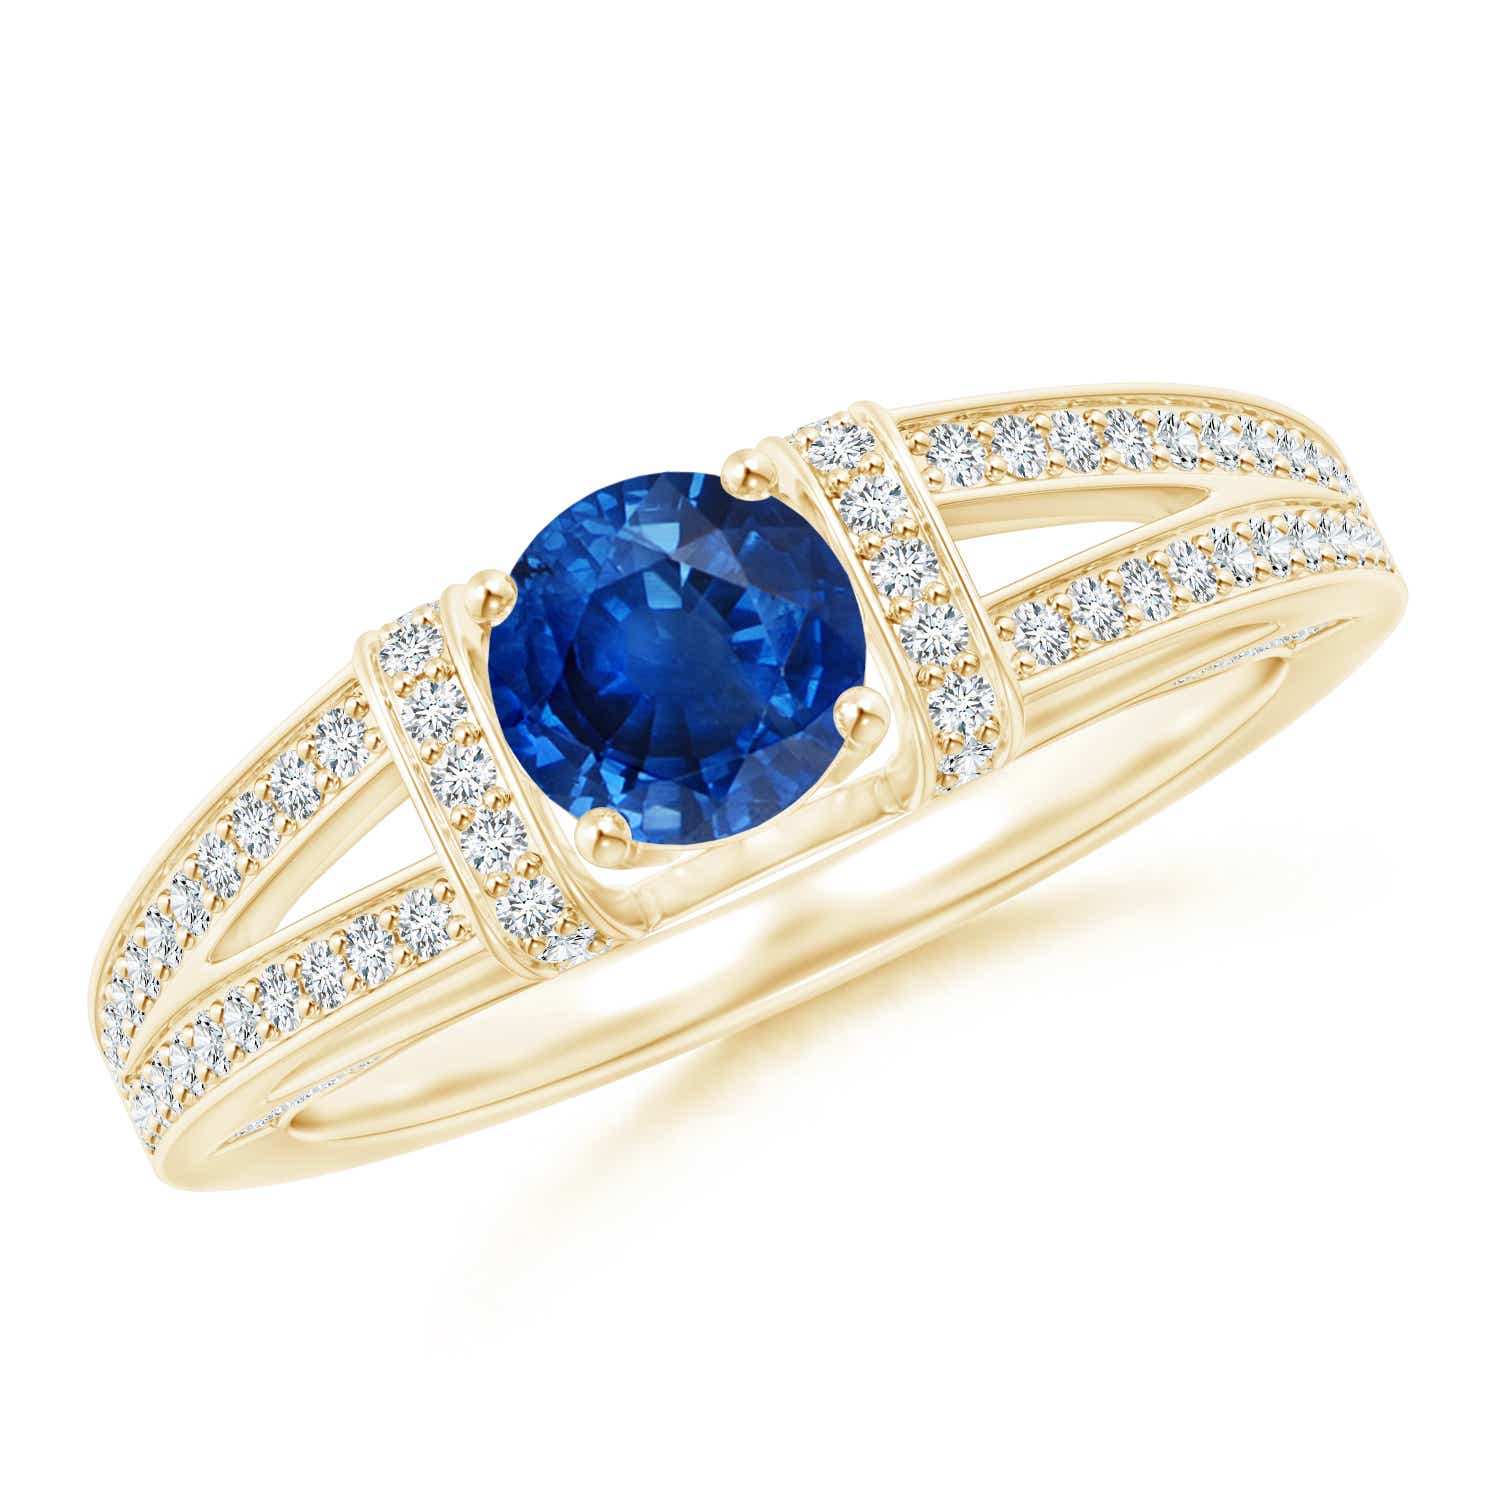 Antique Split Shank Blue Sapphire Ring with Diamond Accents - Angara.com